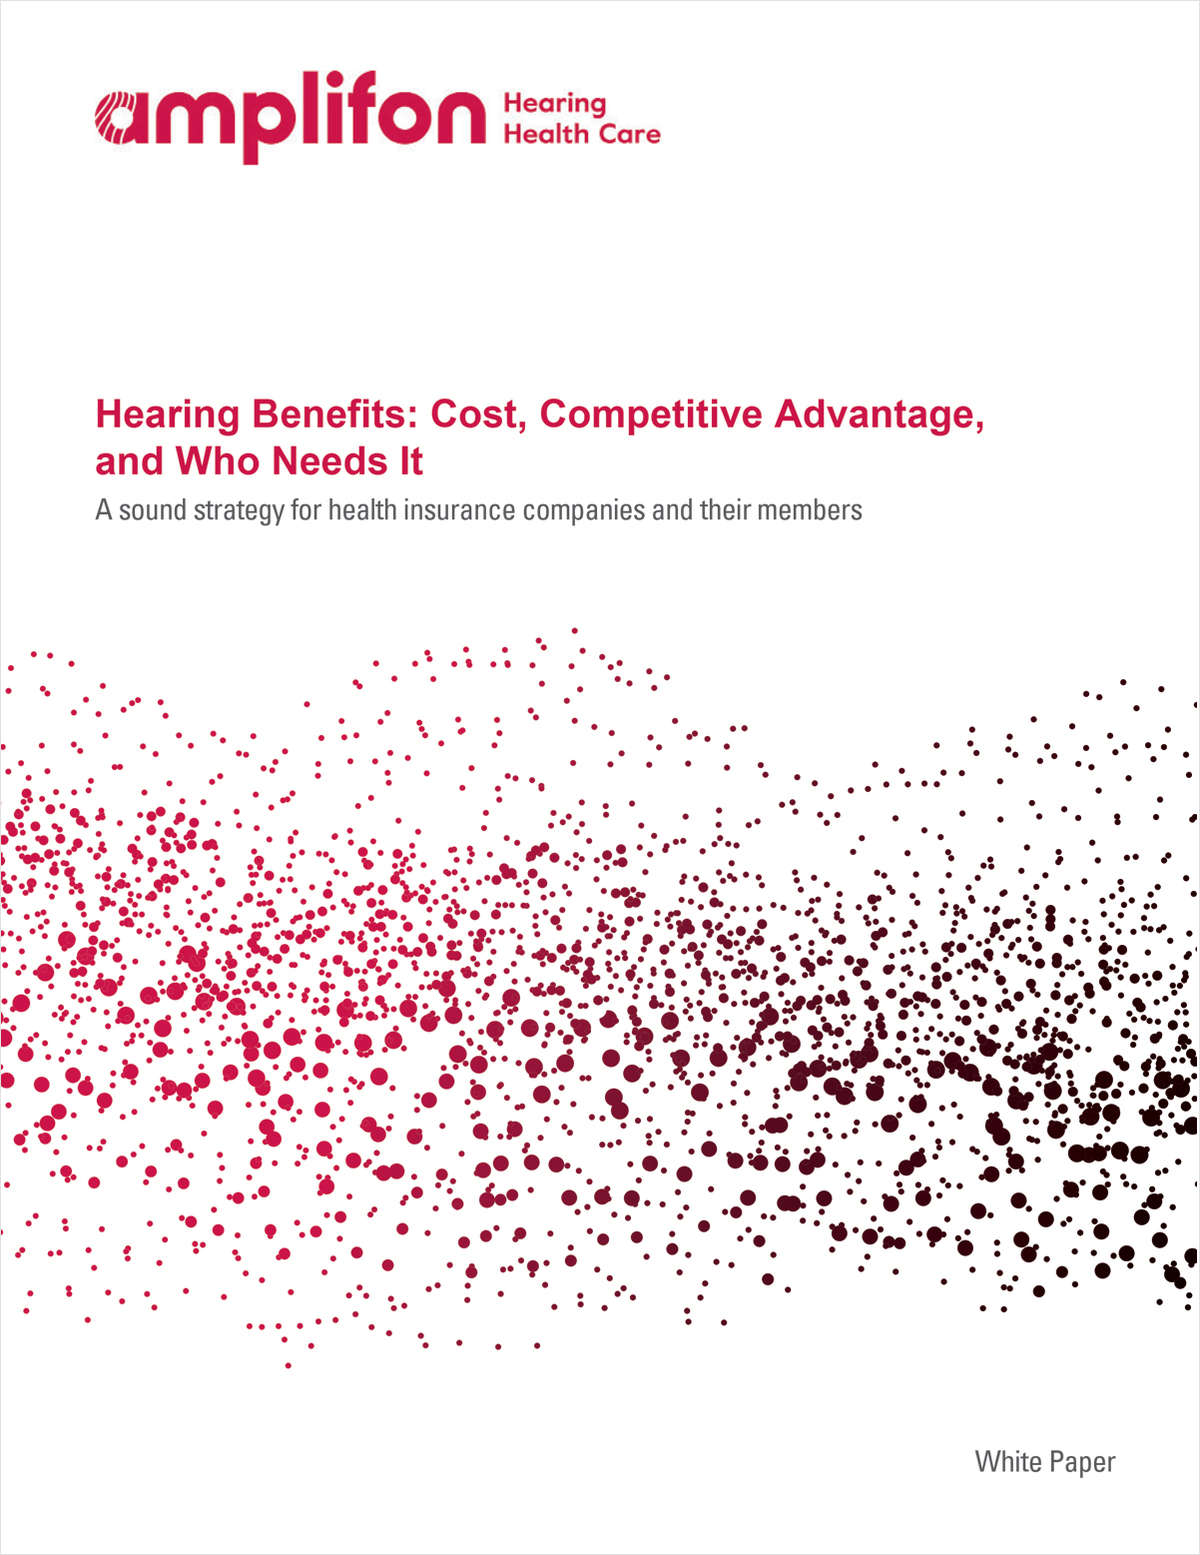 Hearing Benefits: Cost, Competitive Advantage, and Who Needs It.  A Sound Strategy for Health Insurance Companies and Their Members.